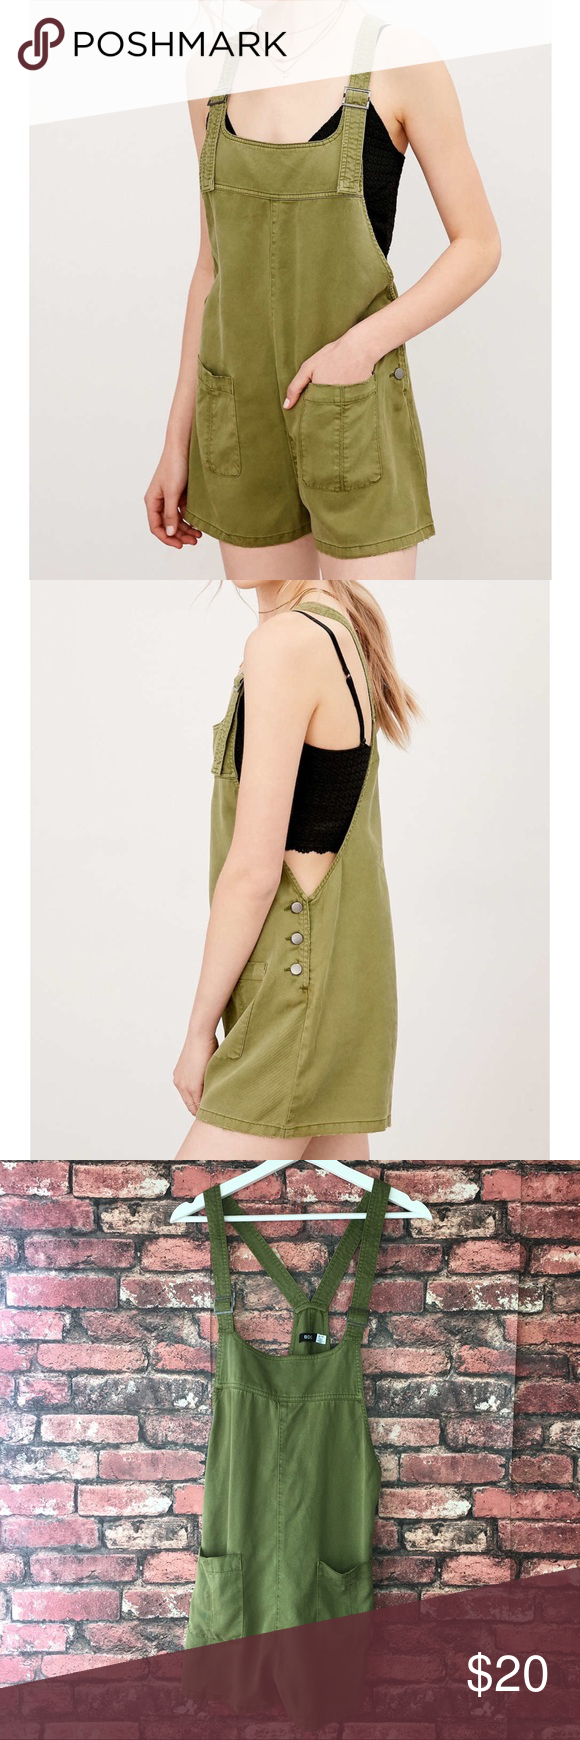 b56b00a77a8 BDG Nicki Overall Romper The perfect olive green overalls for the spring  and summer time. Great for festivals or causal sunny days out with family  or ...